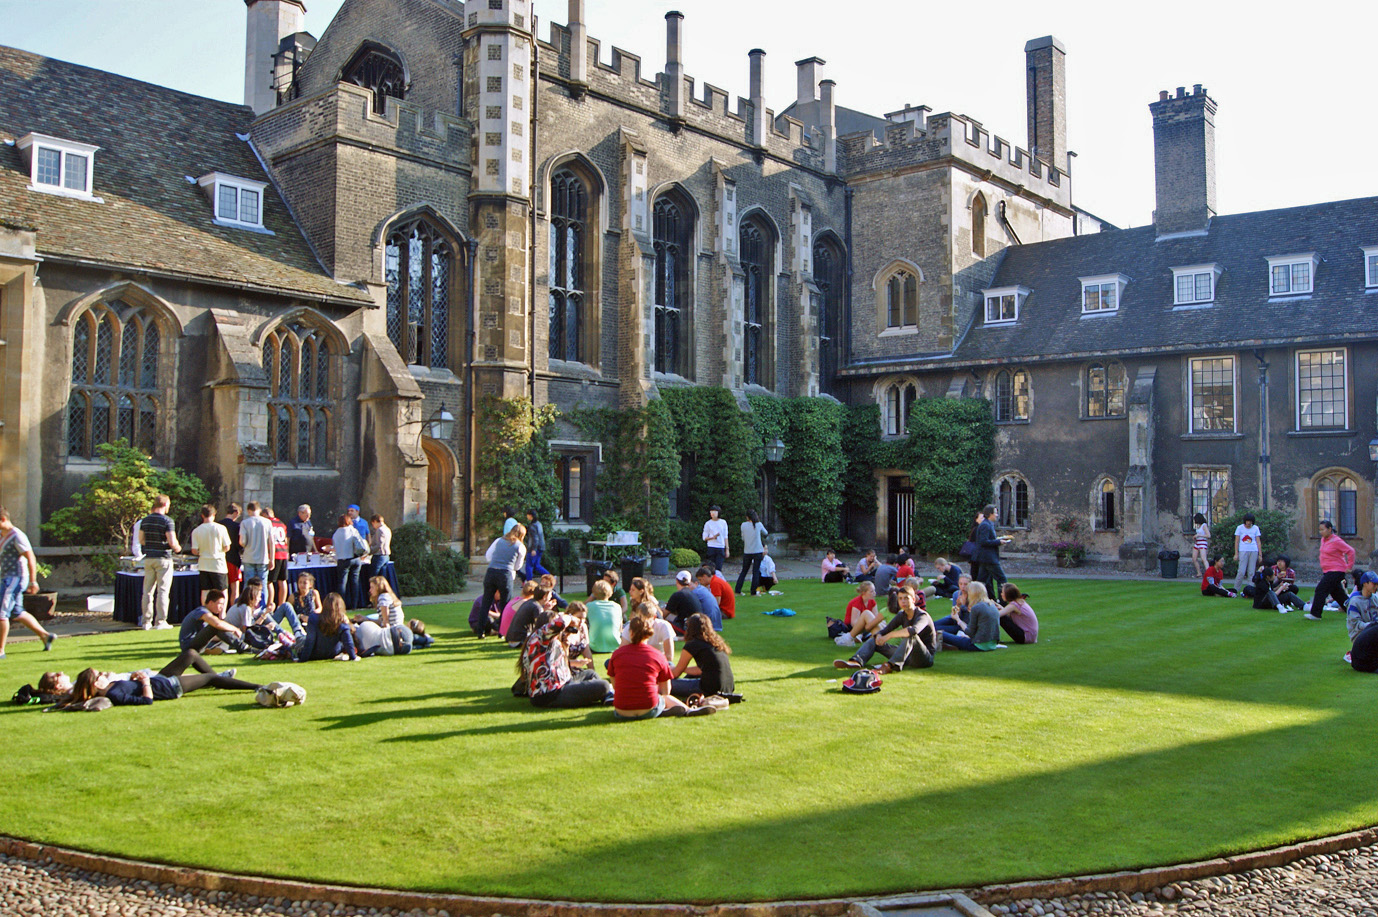 corpus christi college oxford essay competition Essay competitions are an important means by which you can expand your knowledge and hone your learning if you are applying for a particular subject at university, undertaking an essay competition is a good way to deepen your understanding of a field  corpus christi college, oxford biomedical sciences, chemistry, physics deadline: may.